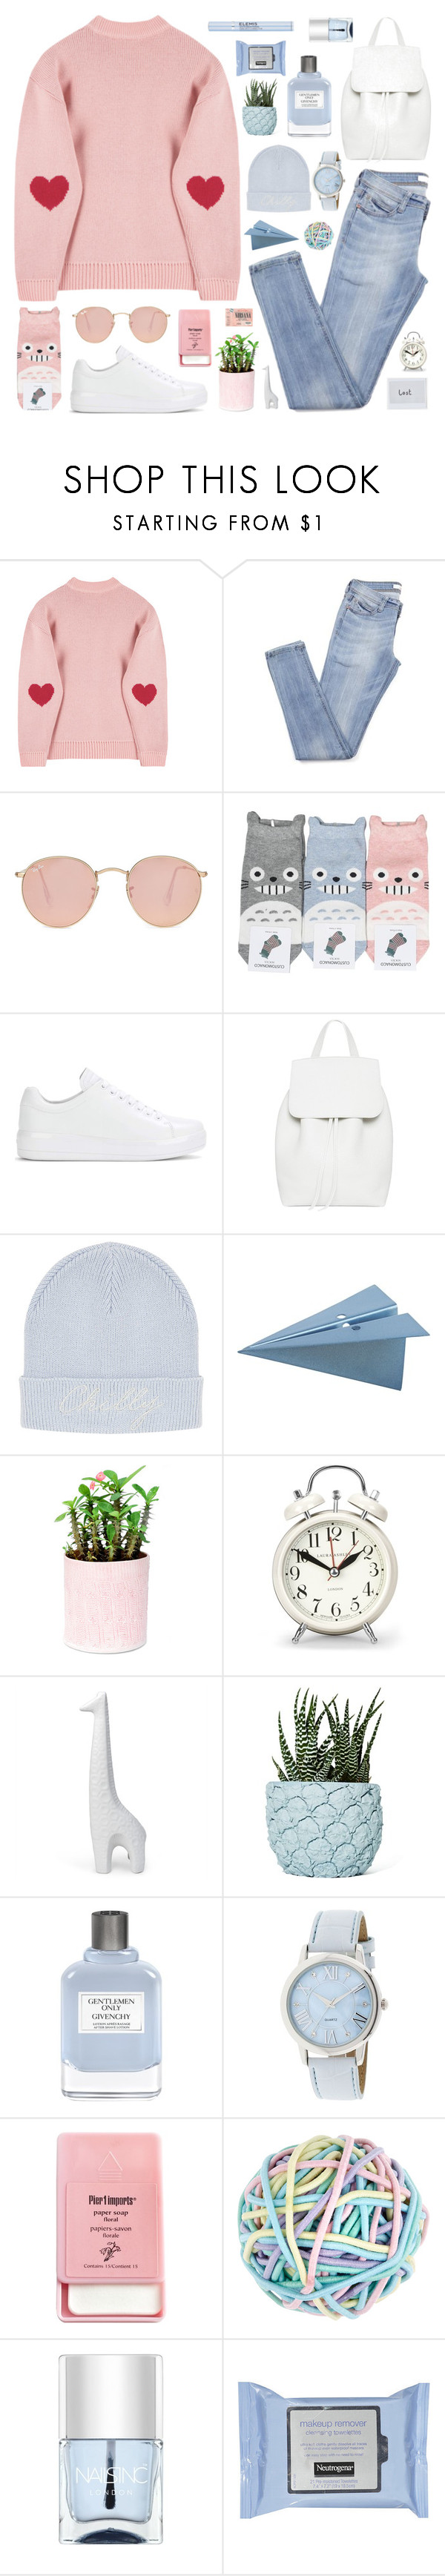 """My Harteu"" by vip-beauty ❤ liked on Polyvore featuring Ray-Ban, Prada, Topshop, CB2, Laura Ashley, Jonathan Adler, Chen Chen & Kai Williams, Givenchy, Pier 1 Imports and Accessorize"